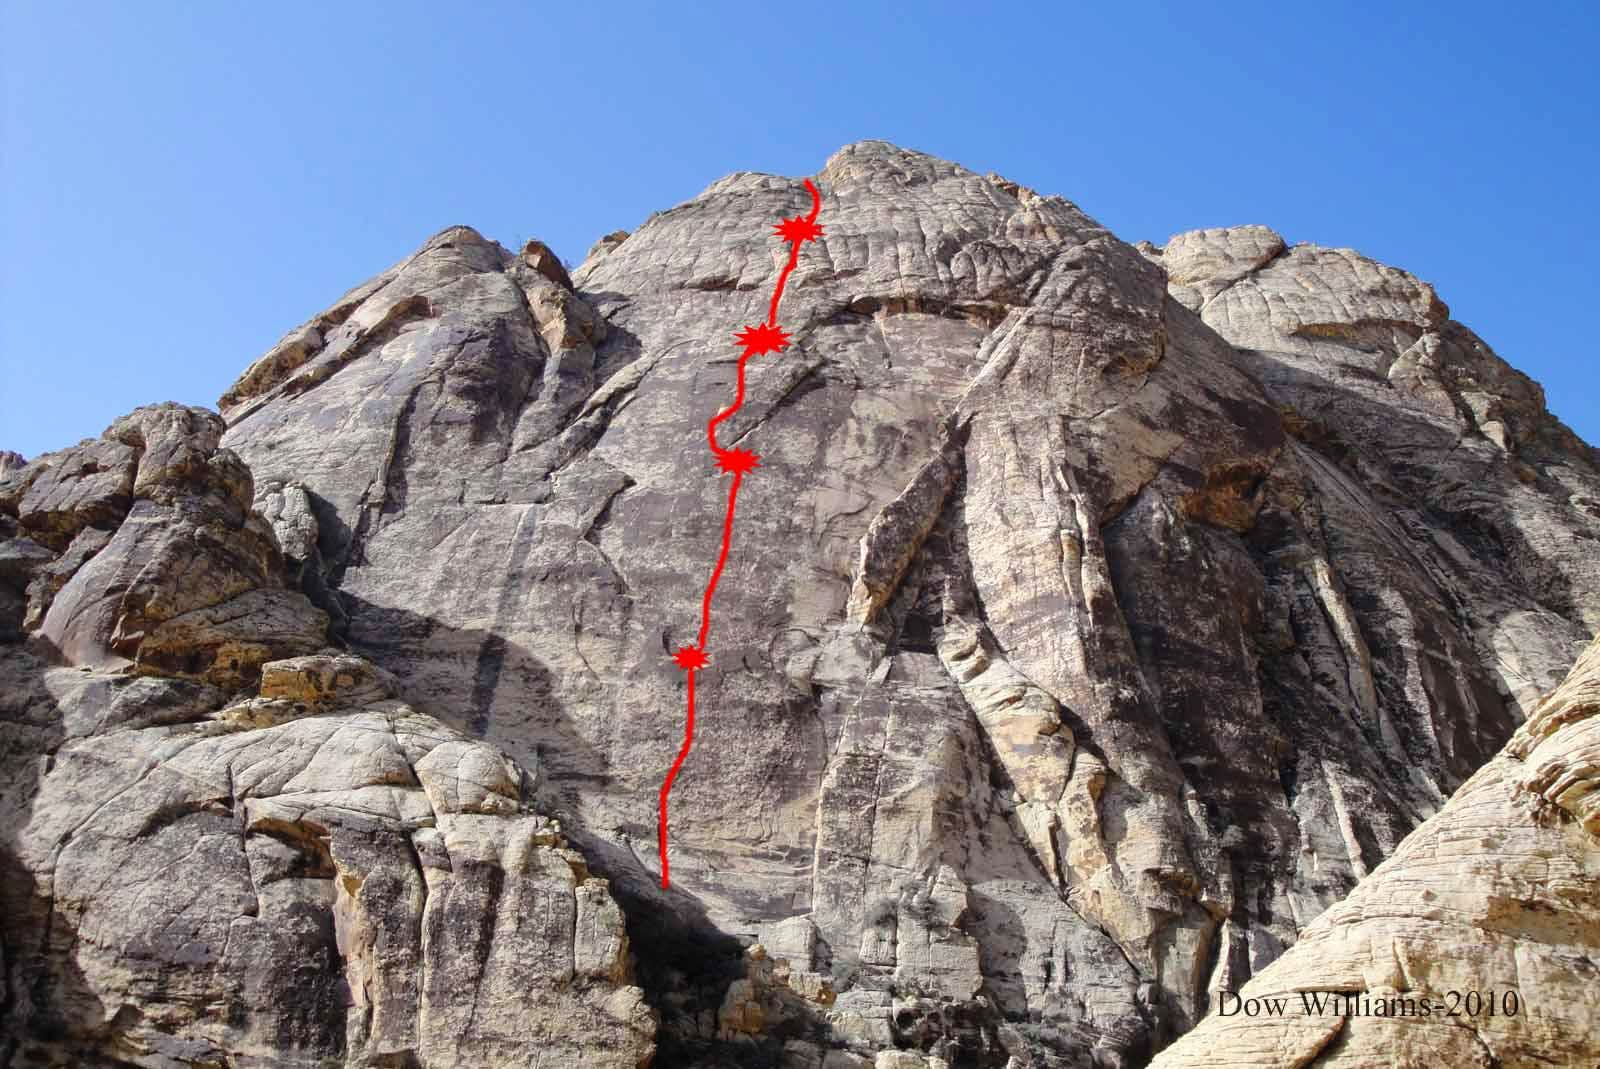 Chuckwalla 21, 5.9, 6 Pitches